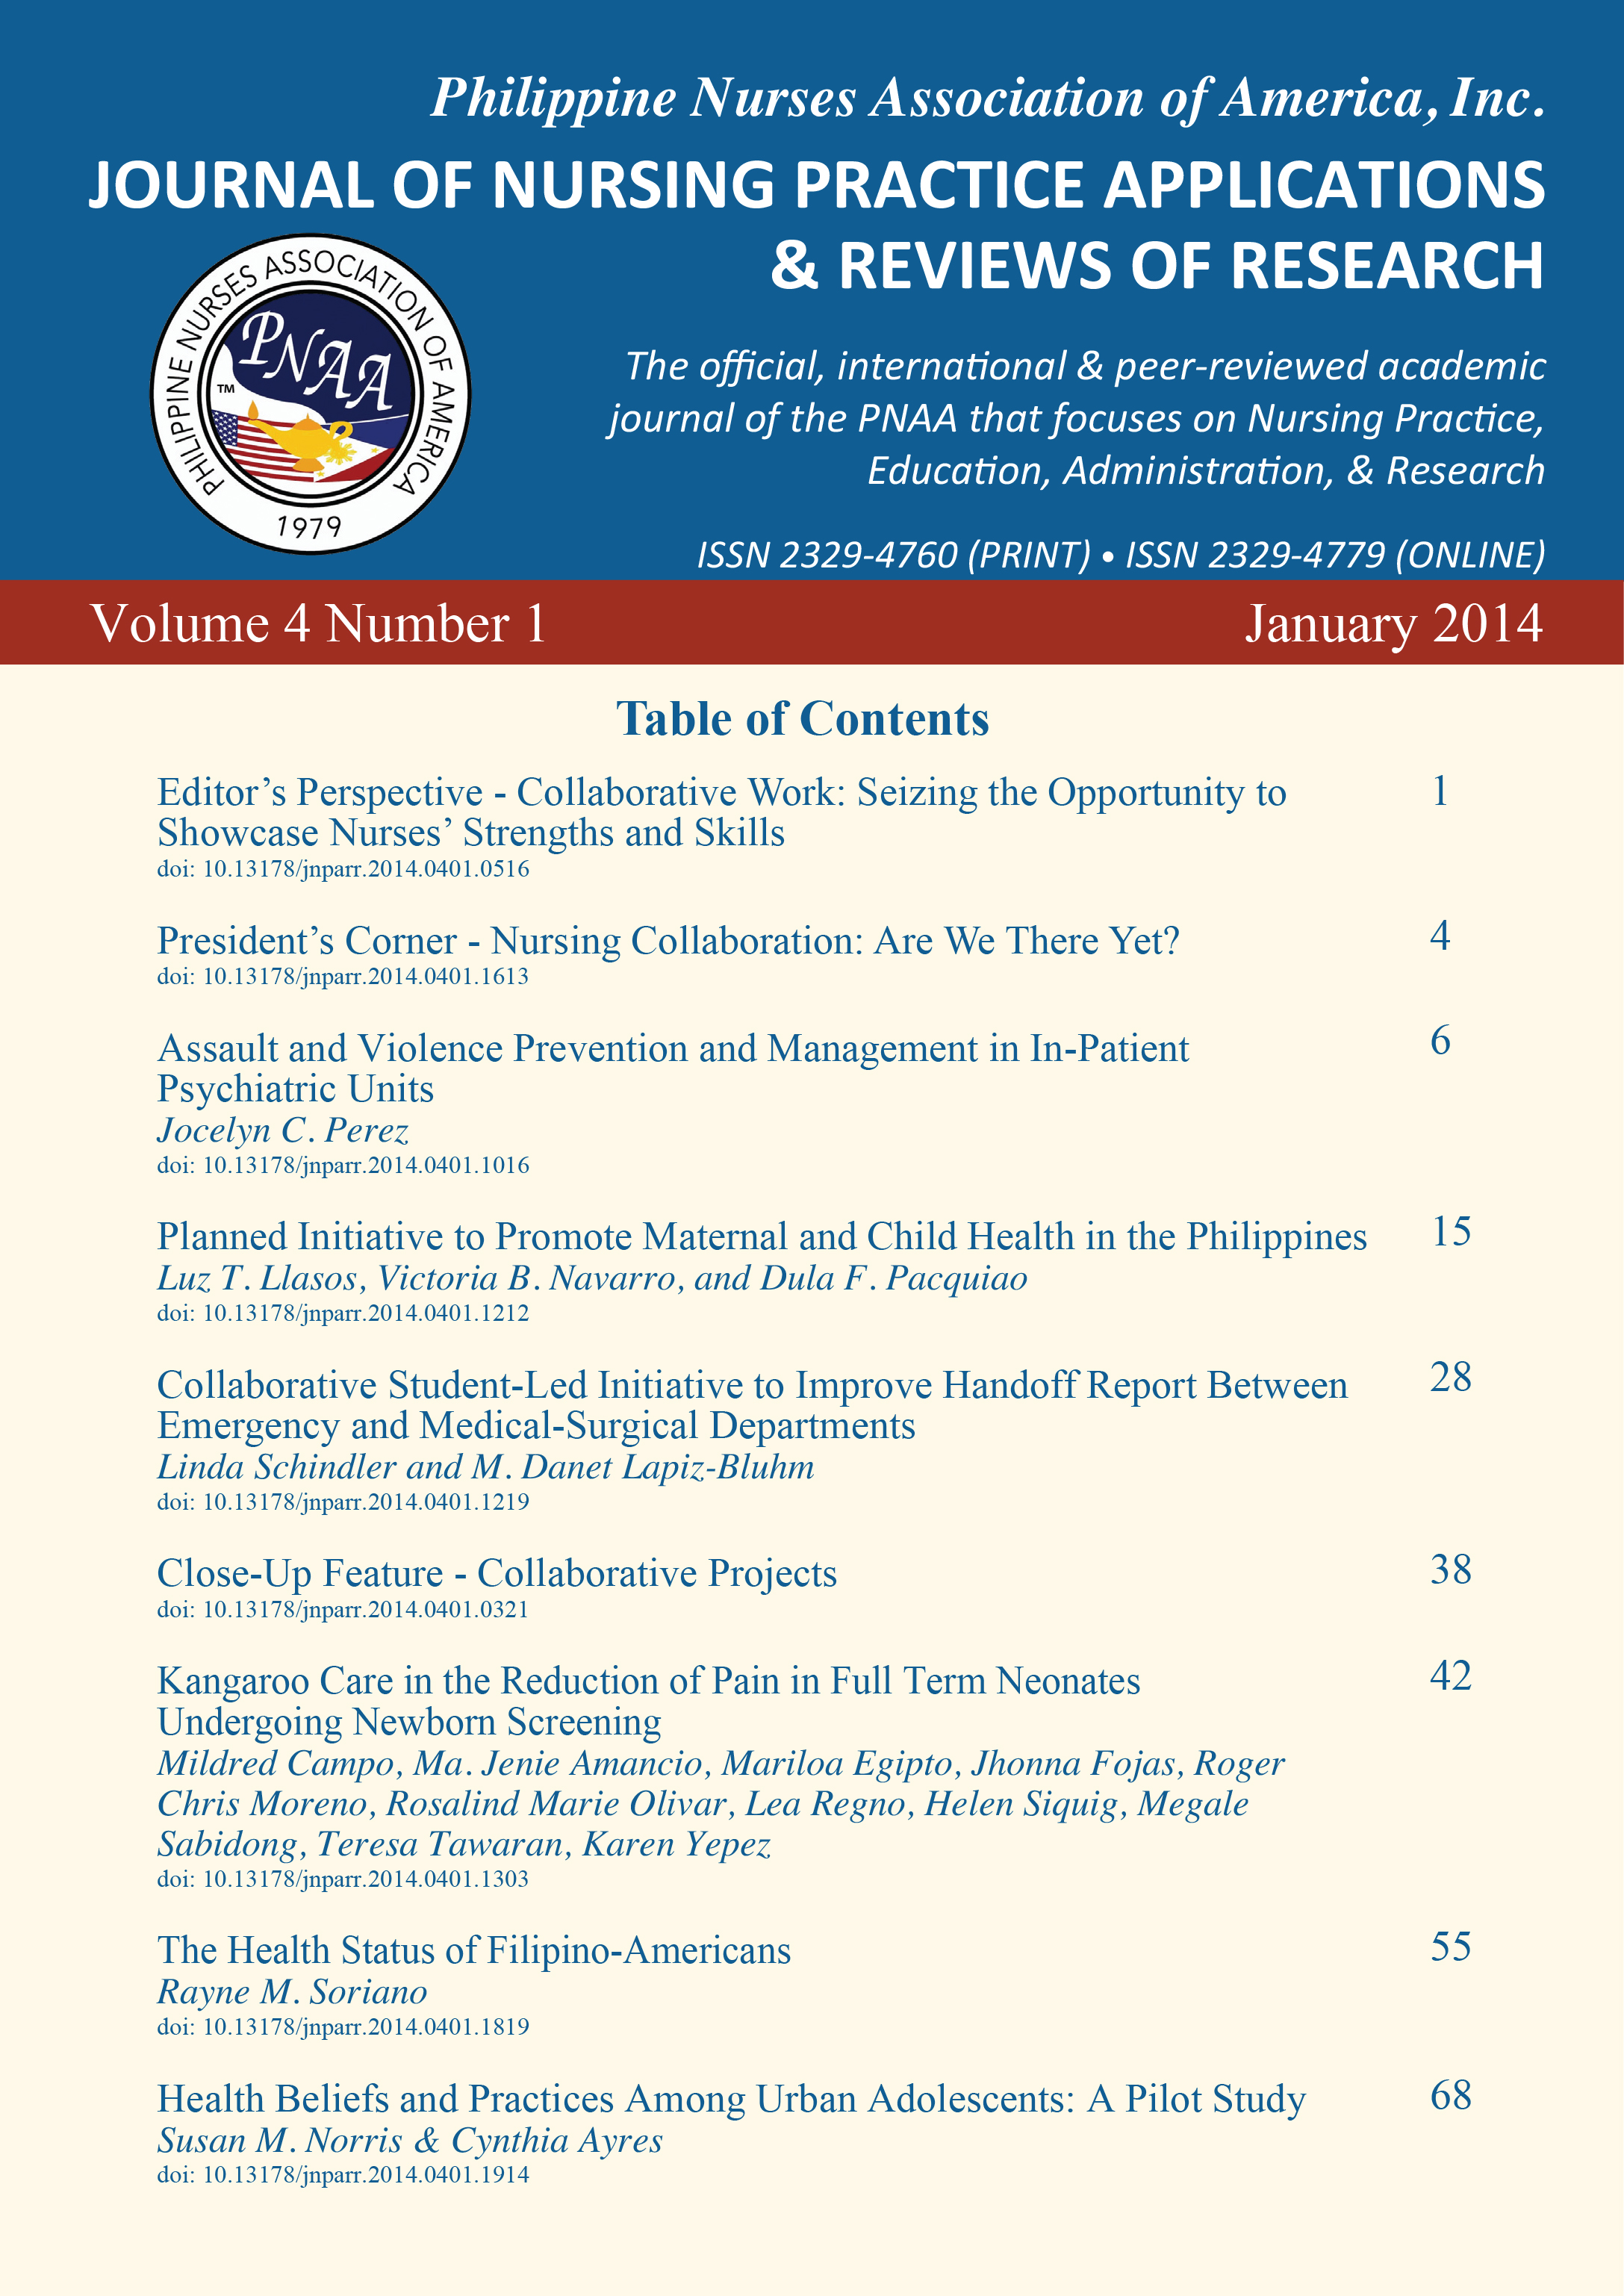 PNAA Journal Cover